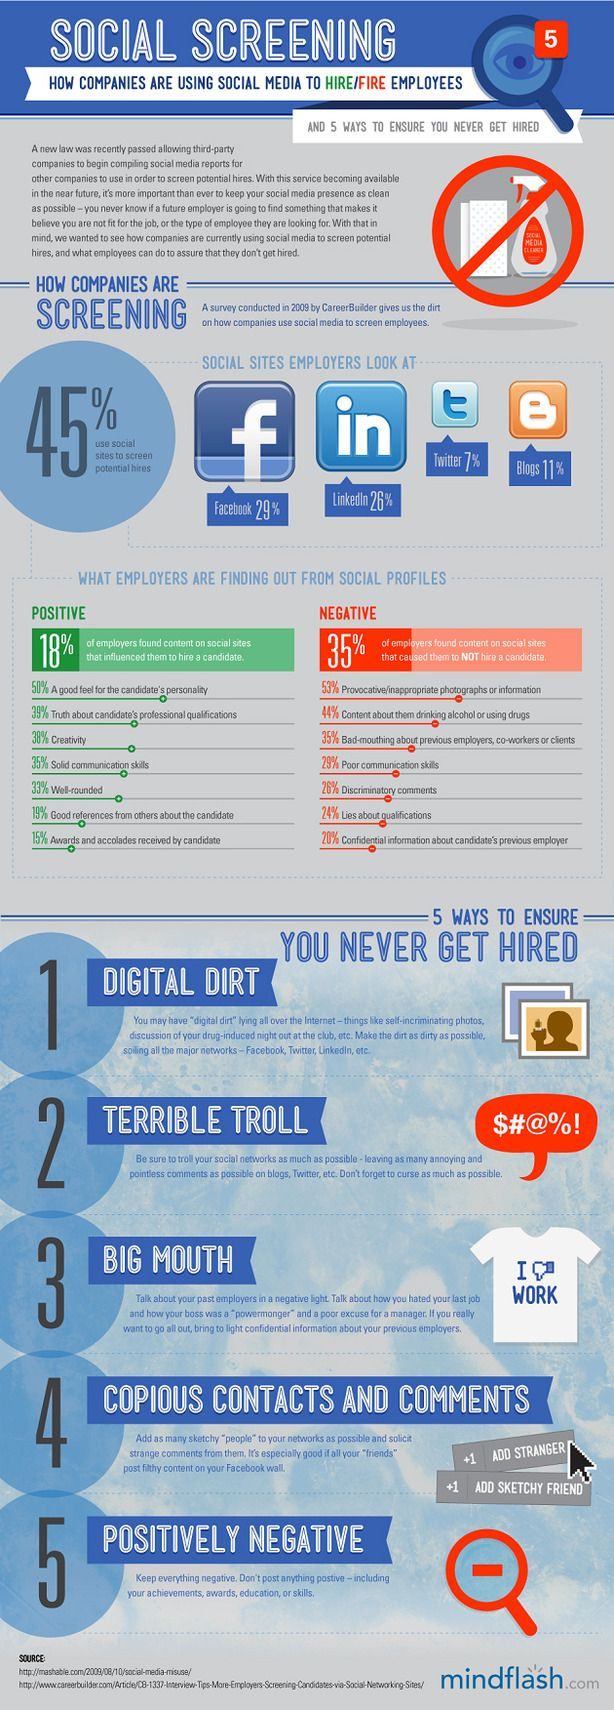 How employers use social networks to hire and fire + 5 ways to ensure you'll never get hired